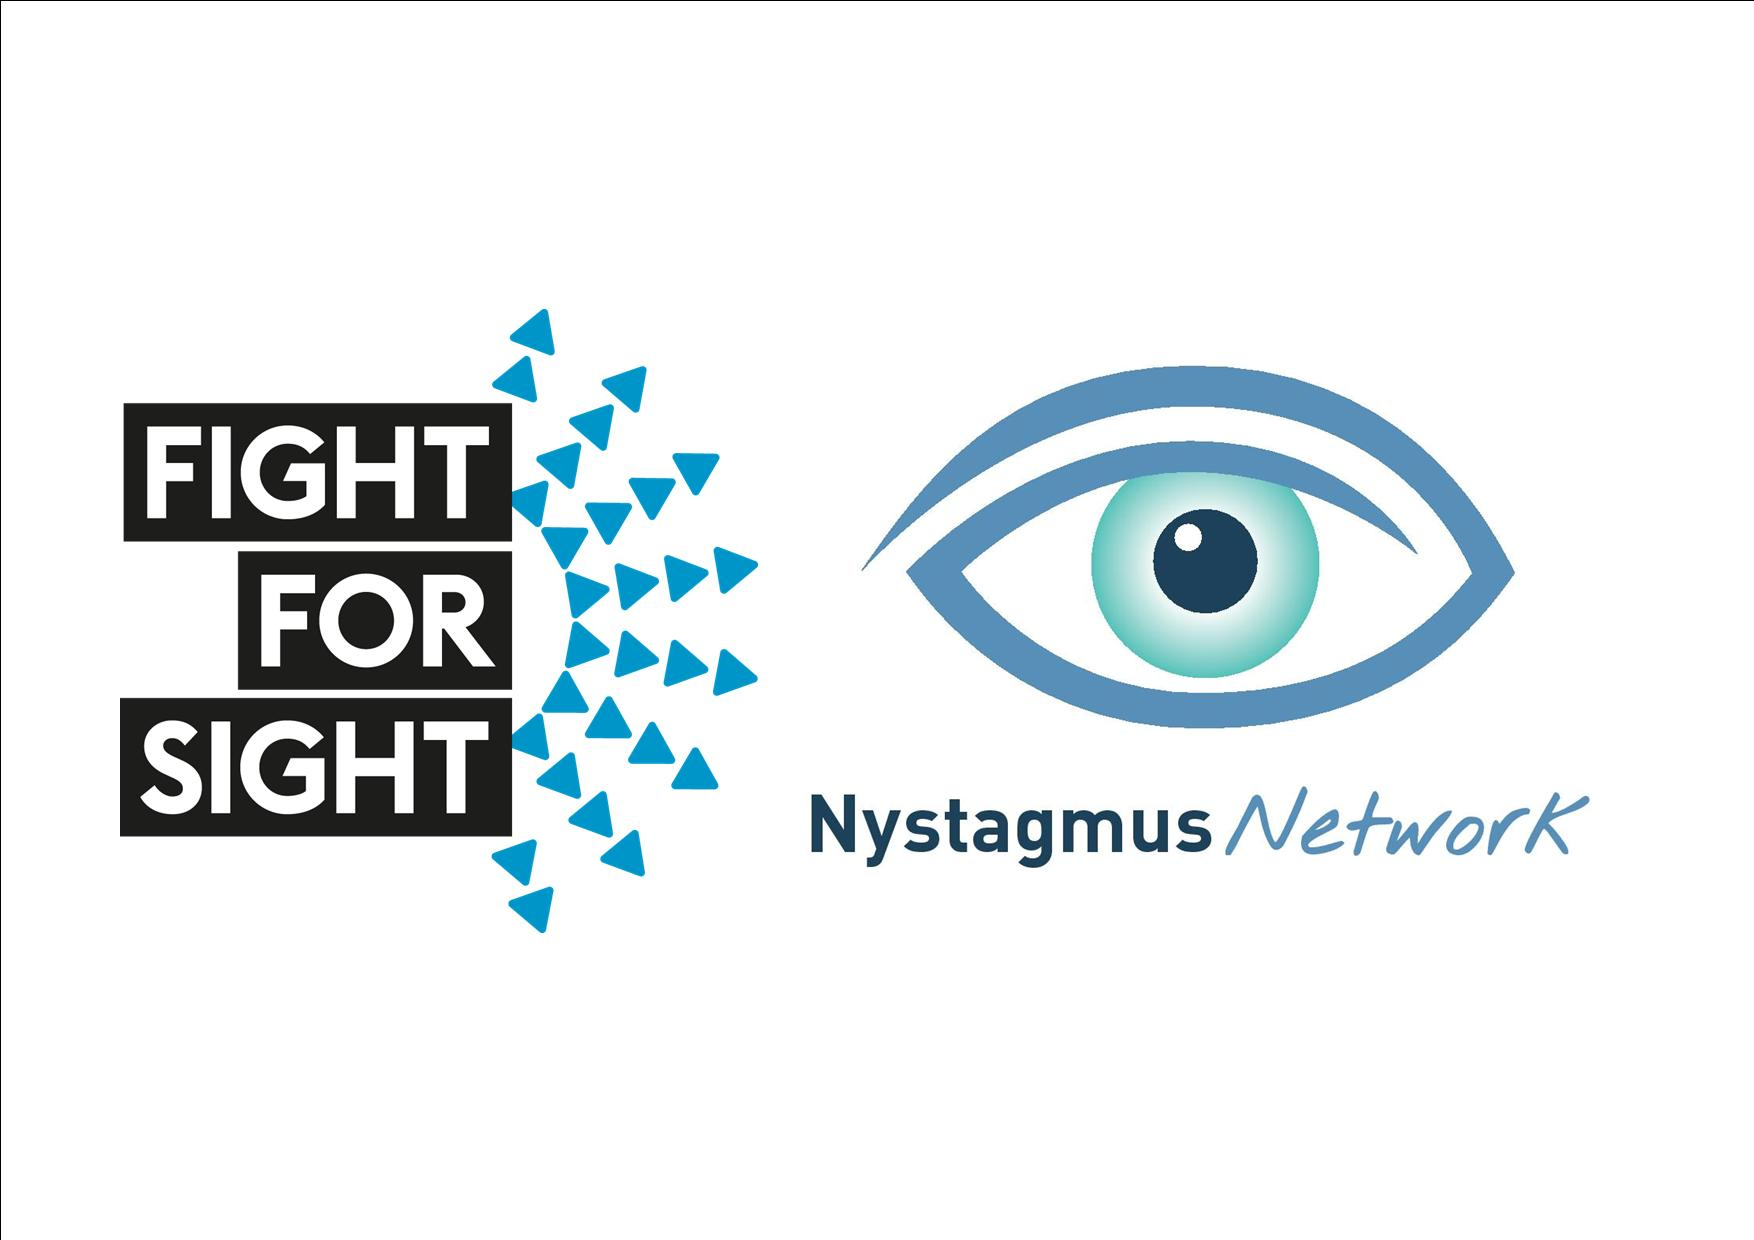 The logos of Fight for Sight and the Nystagmus Network